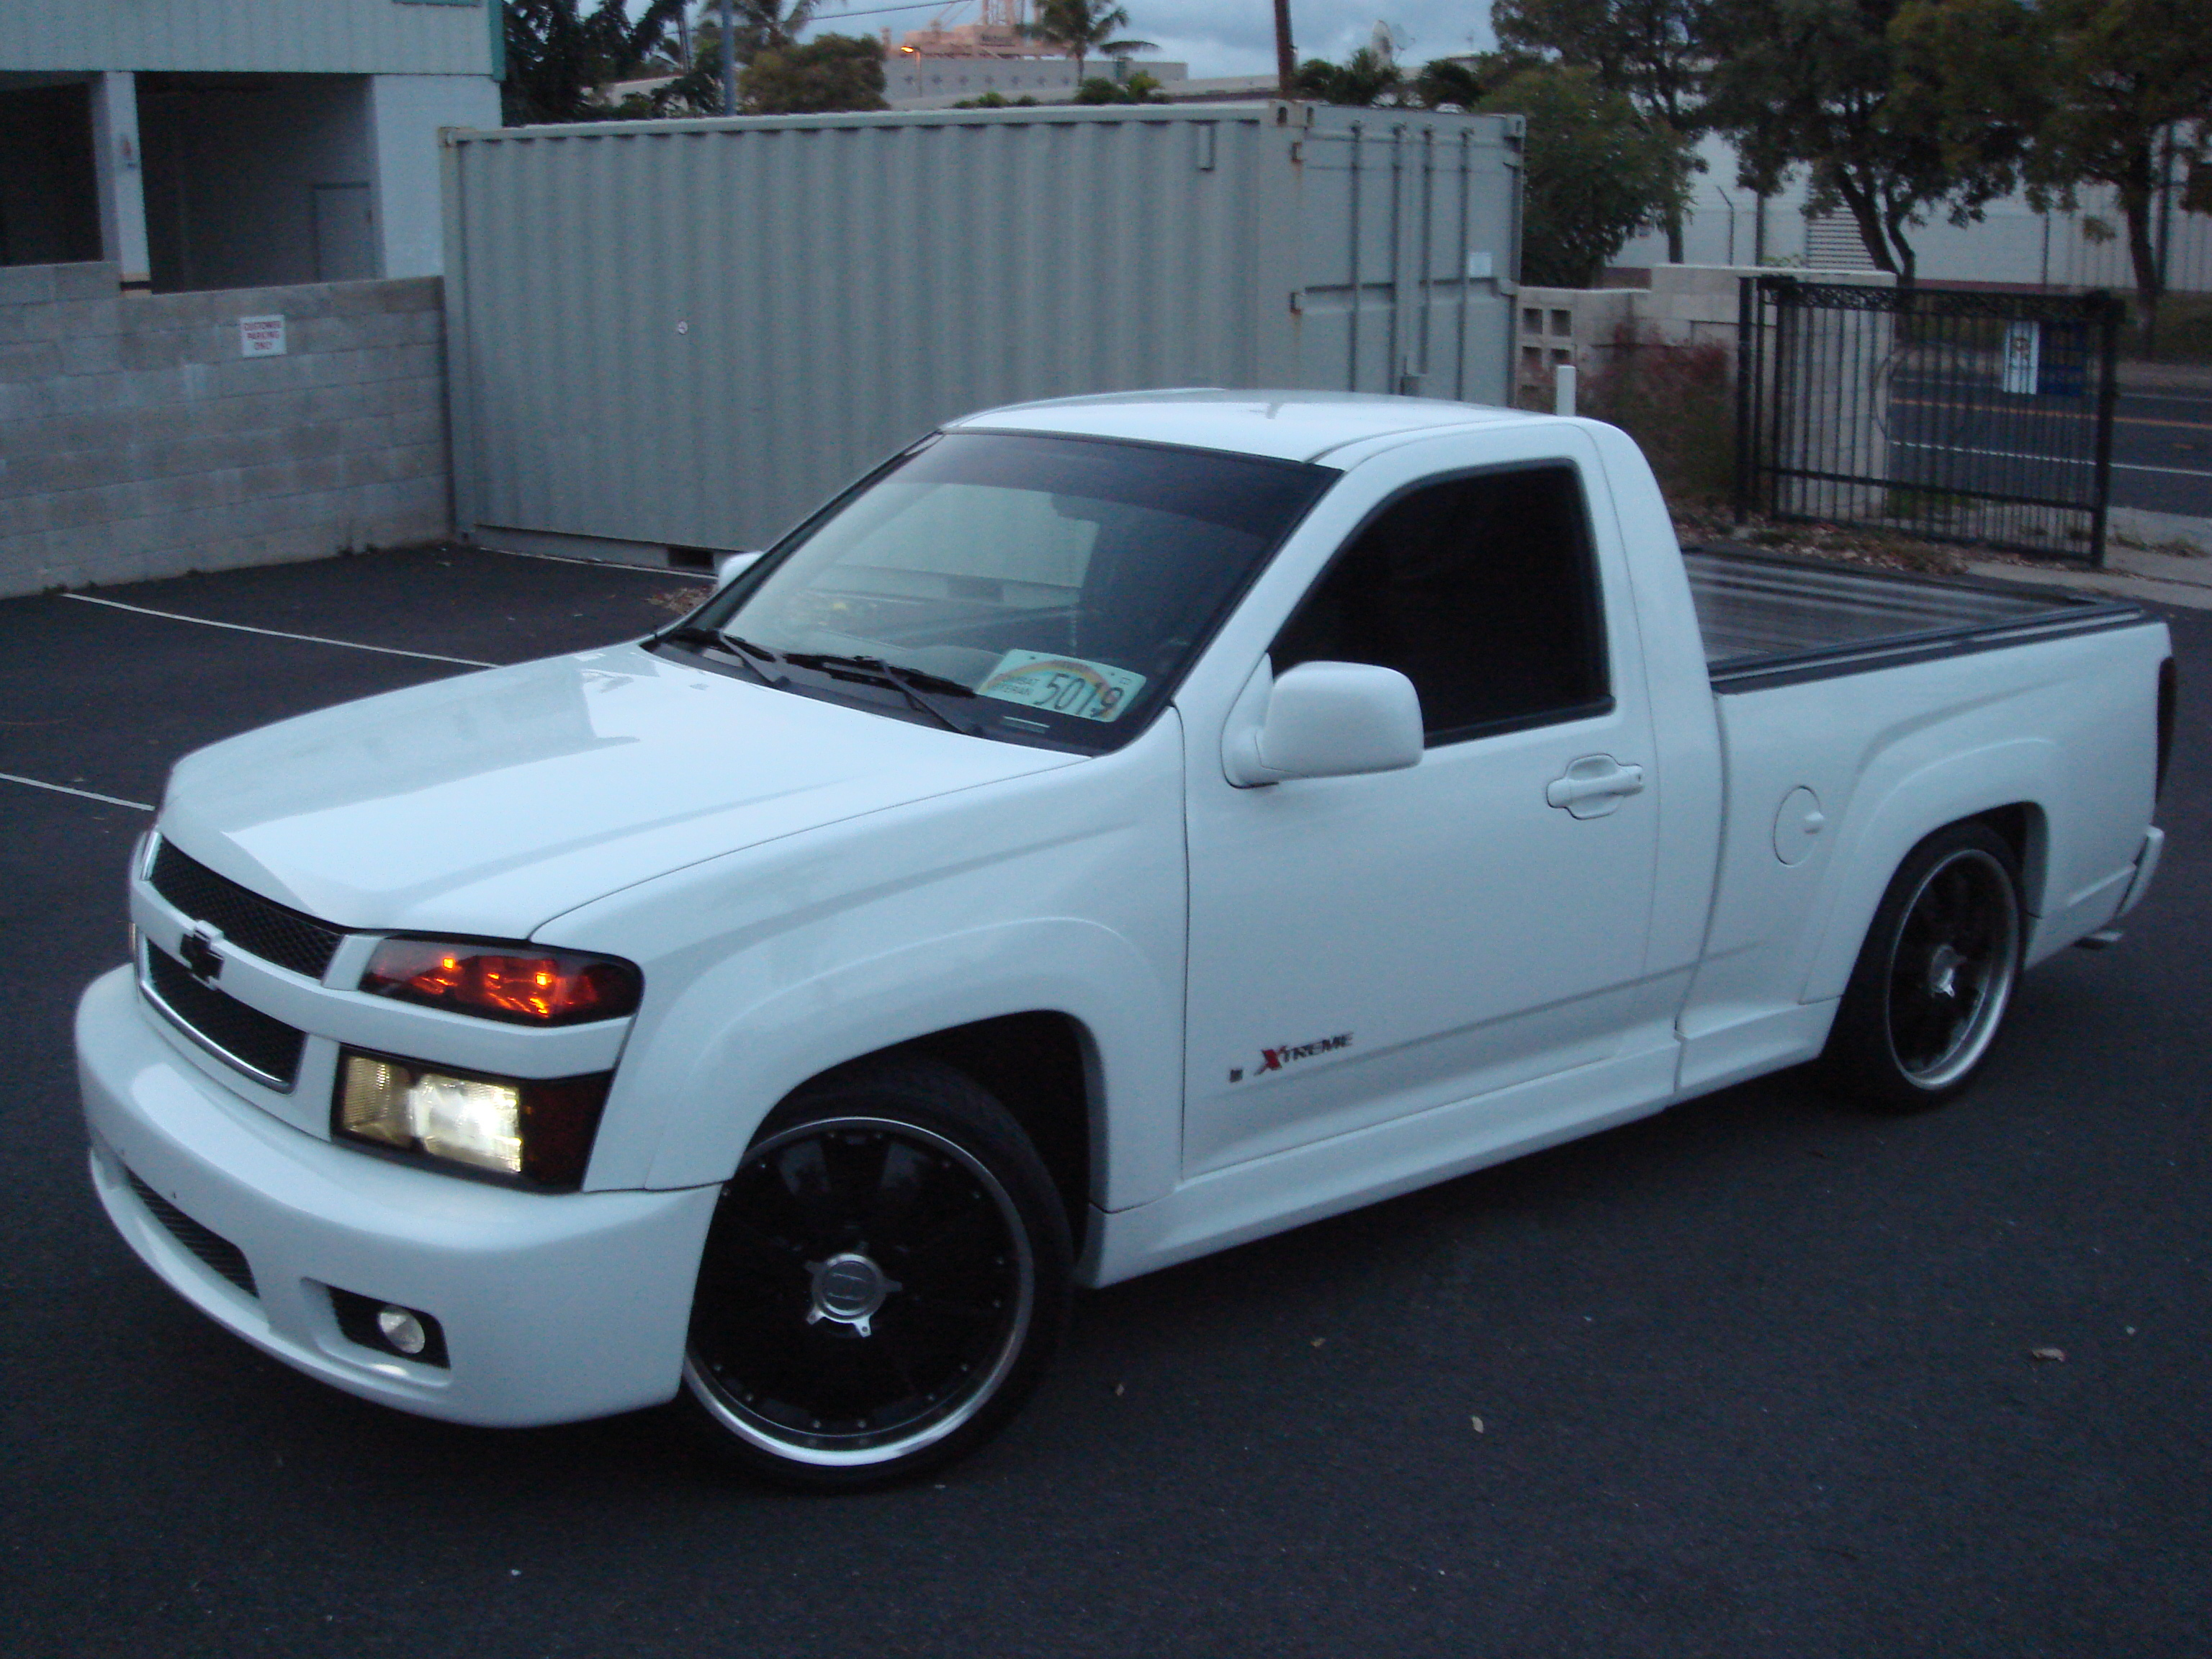 odd78 2006 Chevrolet Colorado Regular Cab Specs, Photos, Modification Info at CarDomain